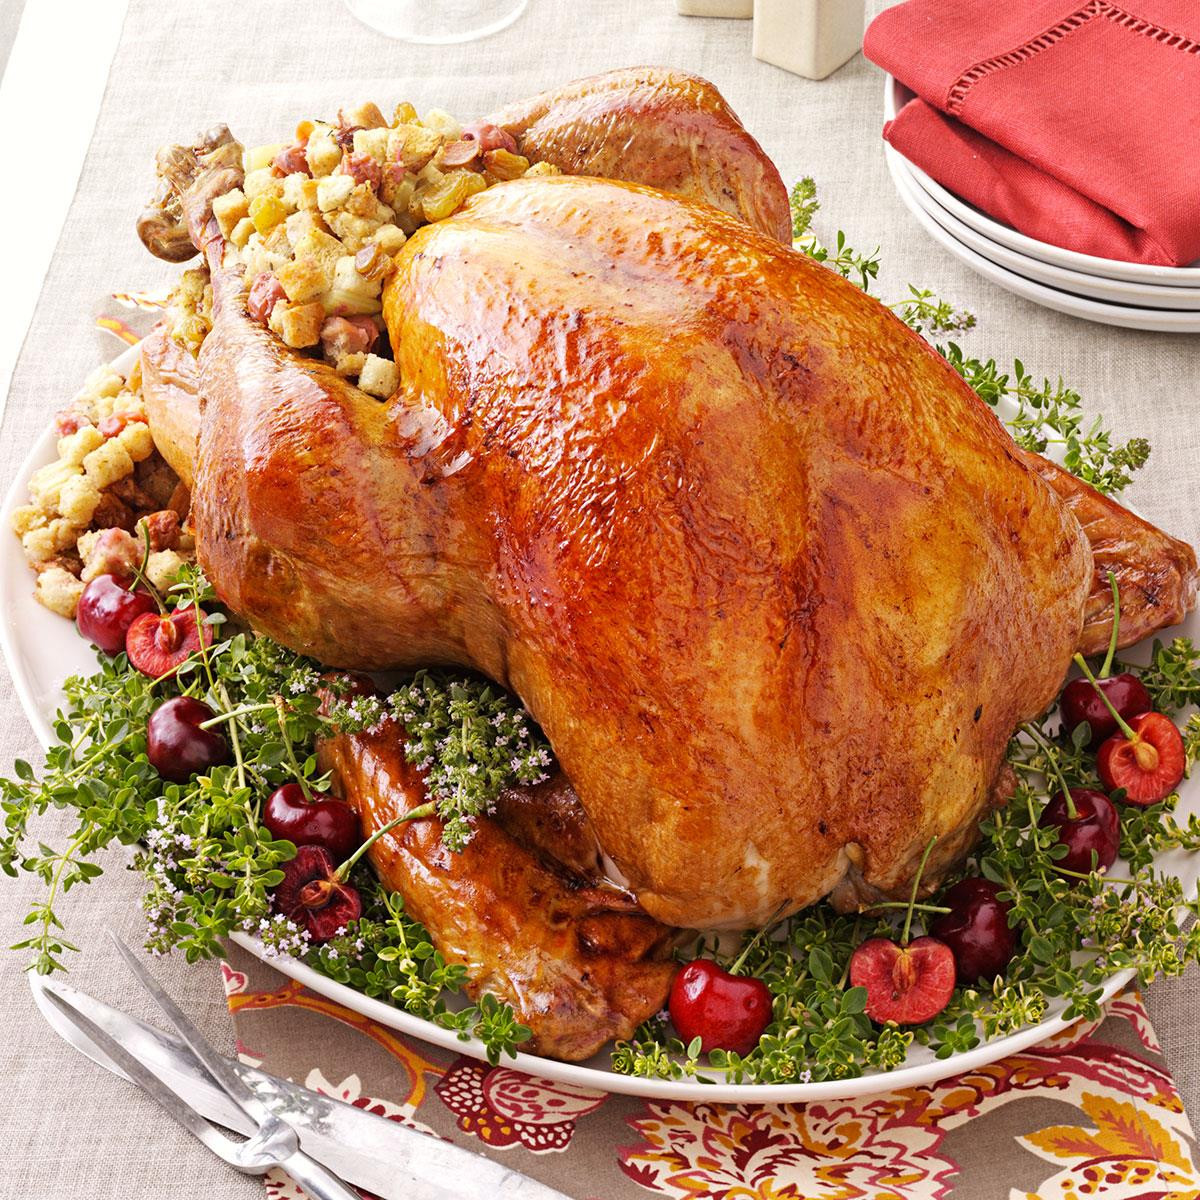 Thanksgiving Turkey Recipe With Stuffing  Turkey with Cherry Stuffing Recipe